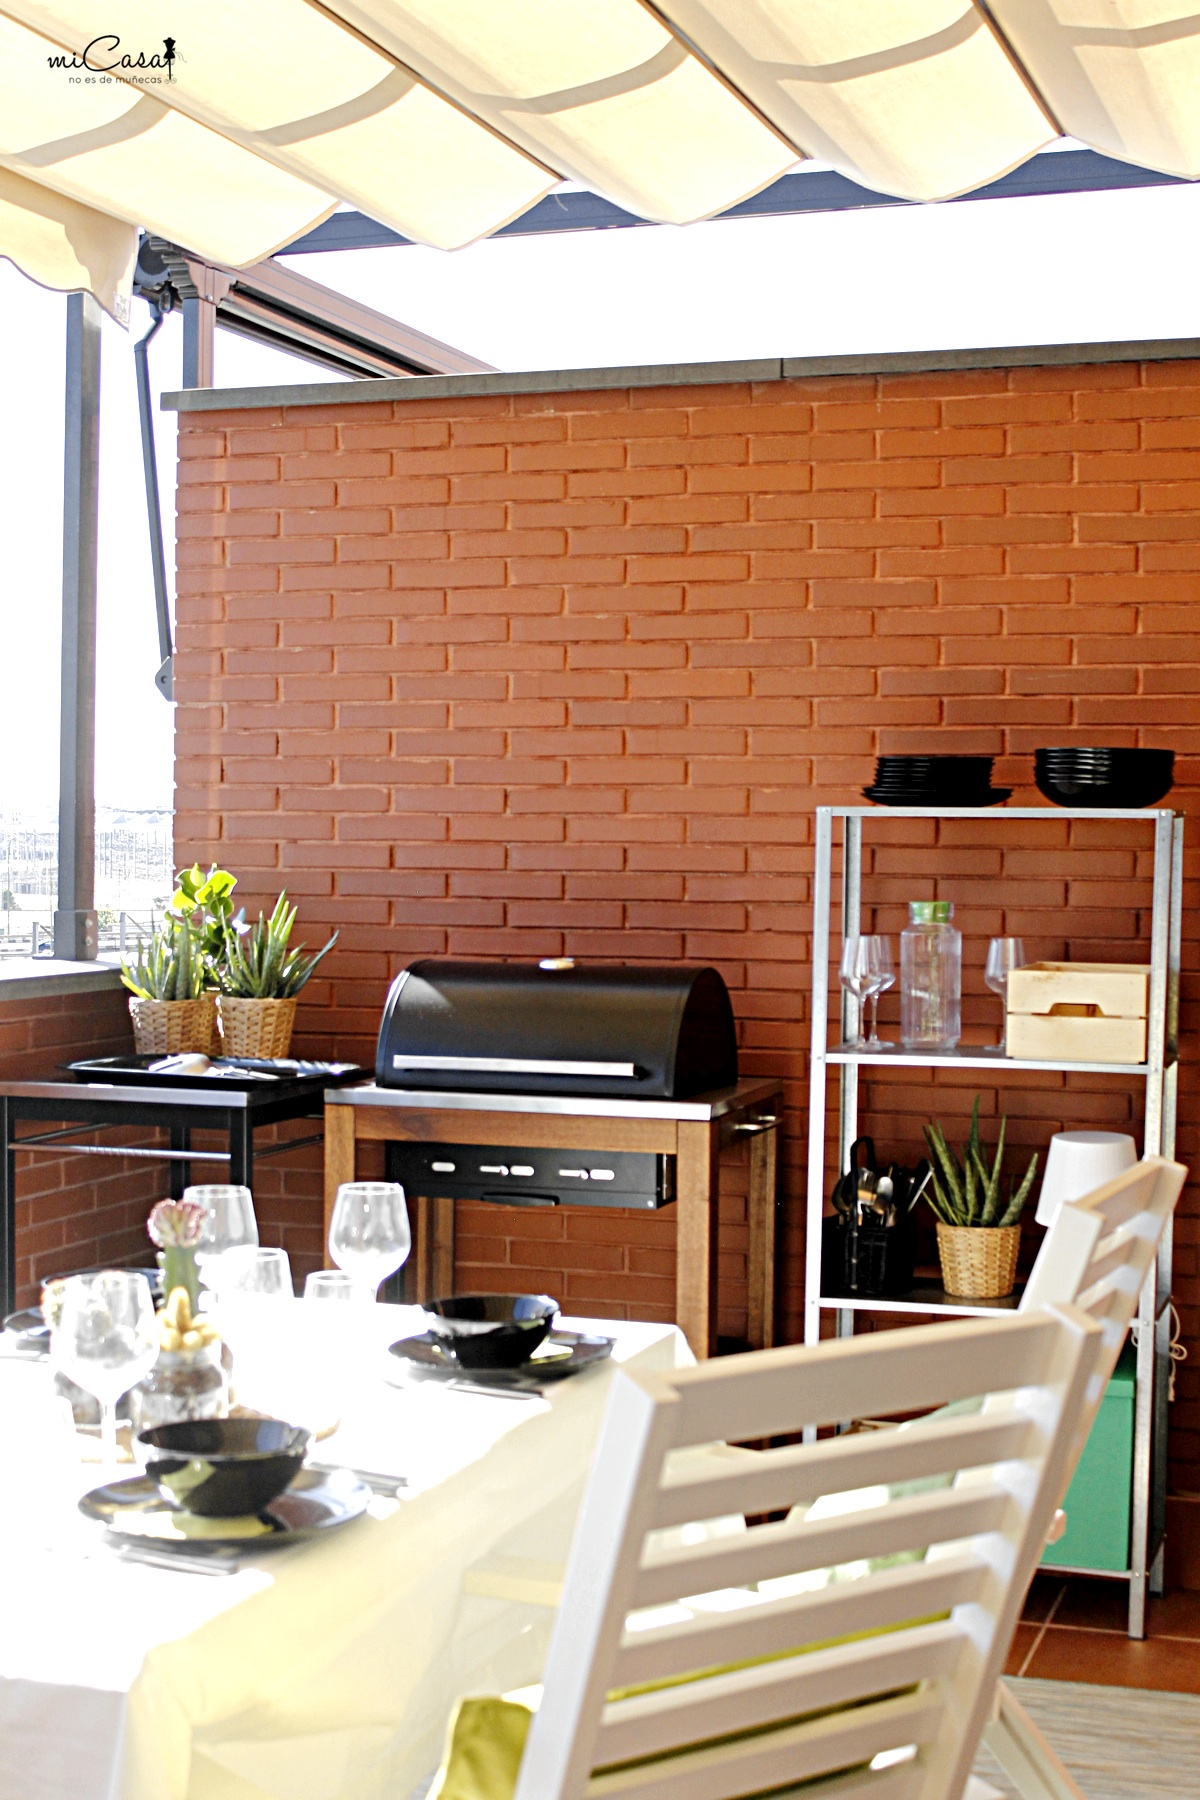 3 Claves Para Decorar La Terraza Bricopared Beissier